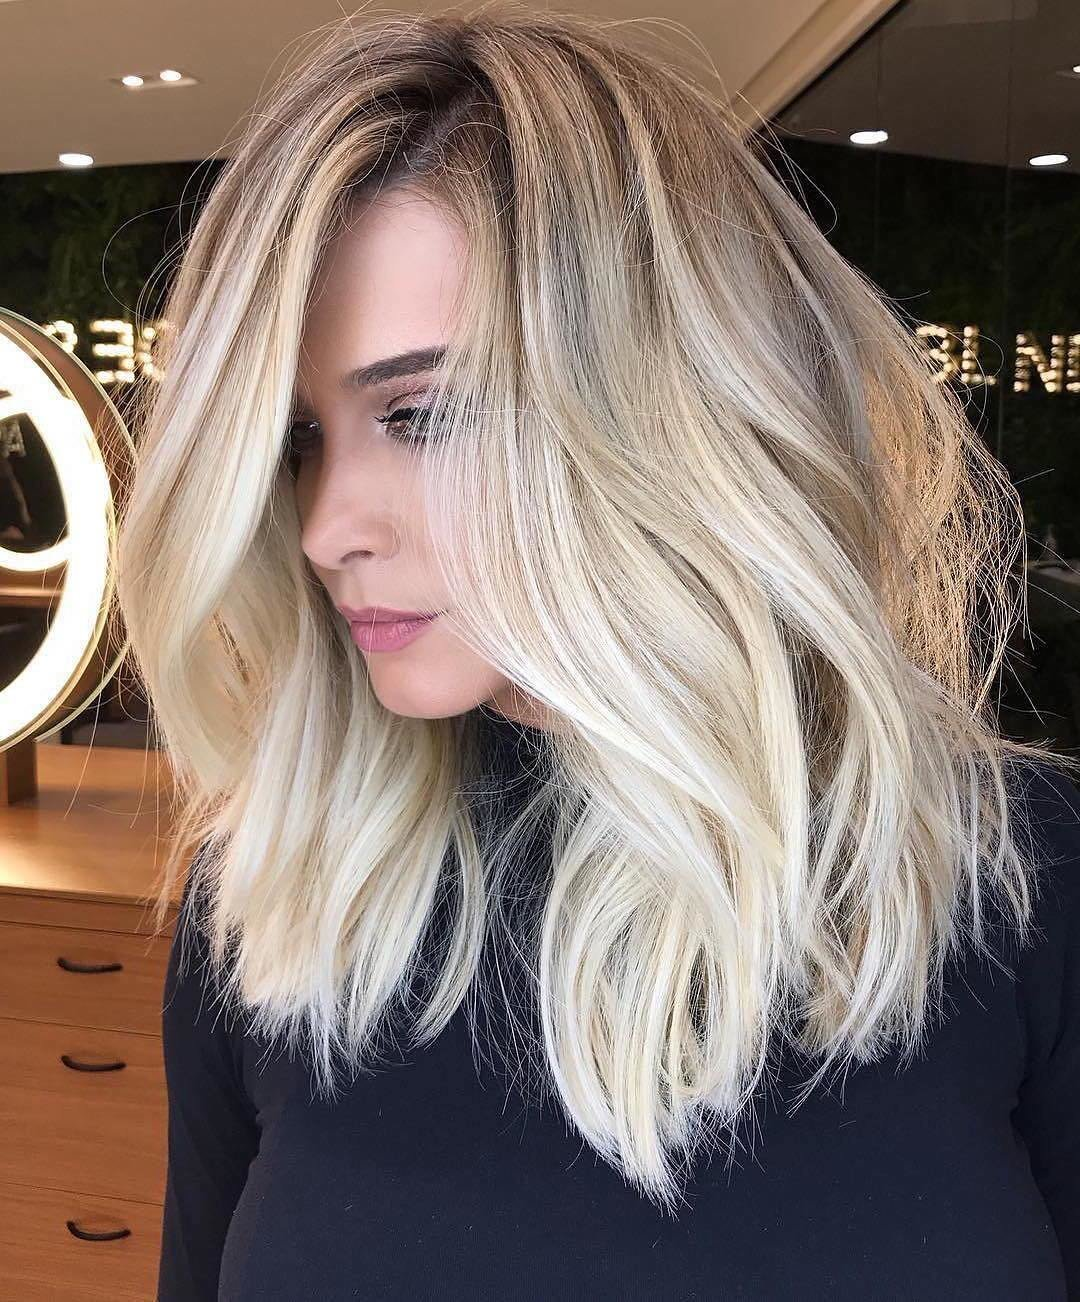 New 10 Trendy Ombre And Balayage Hairstyles For Shoulder Ideas With Pictures